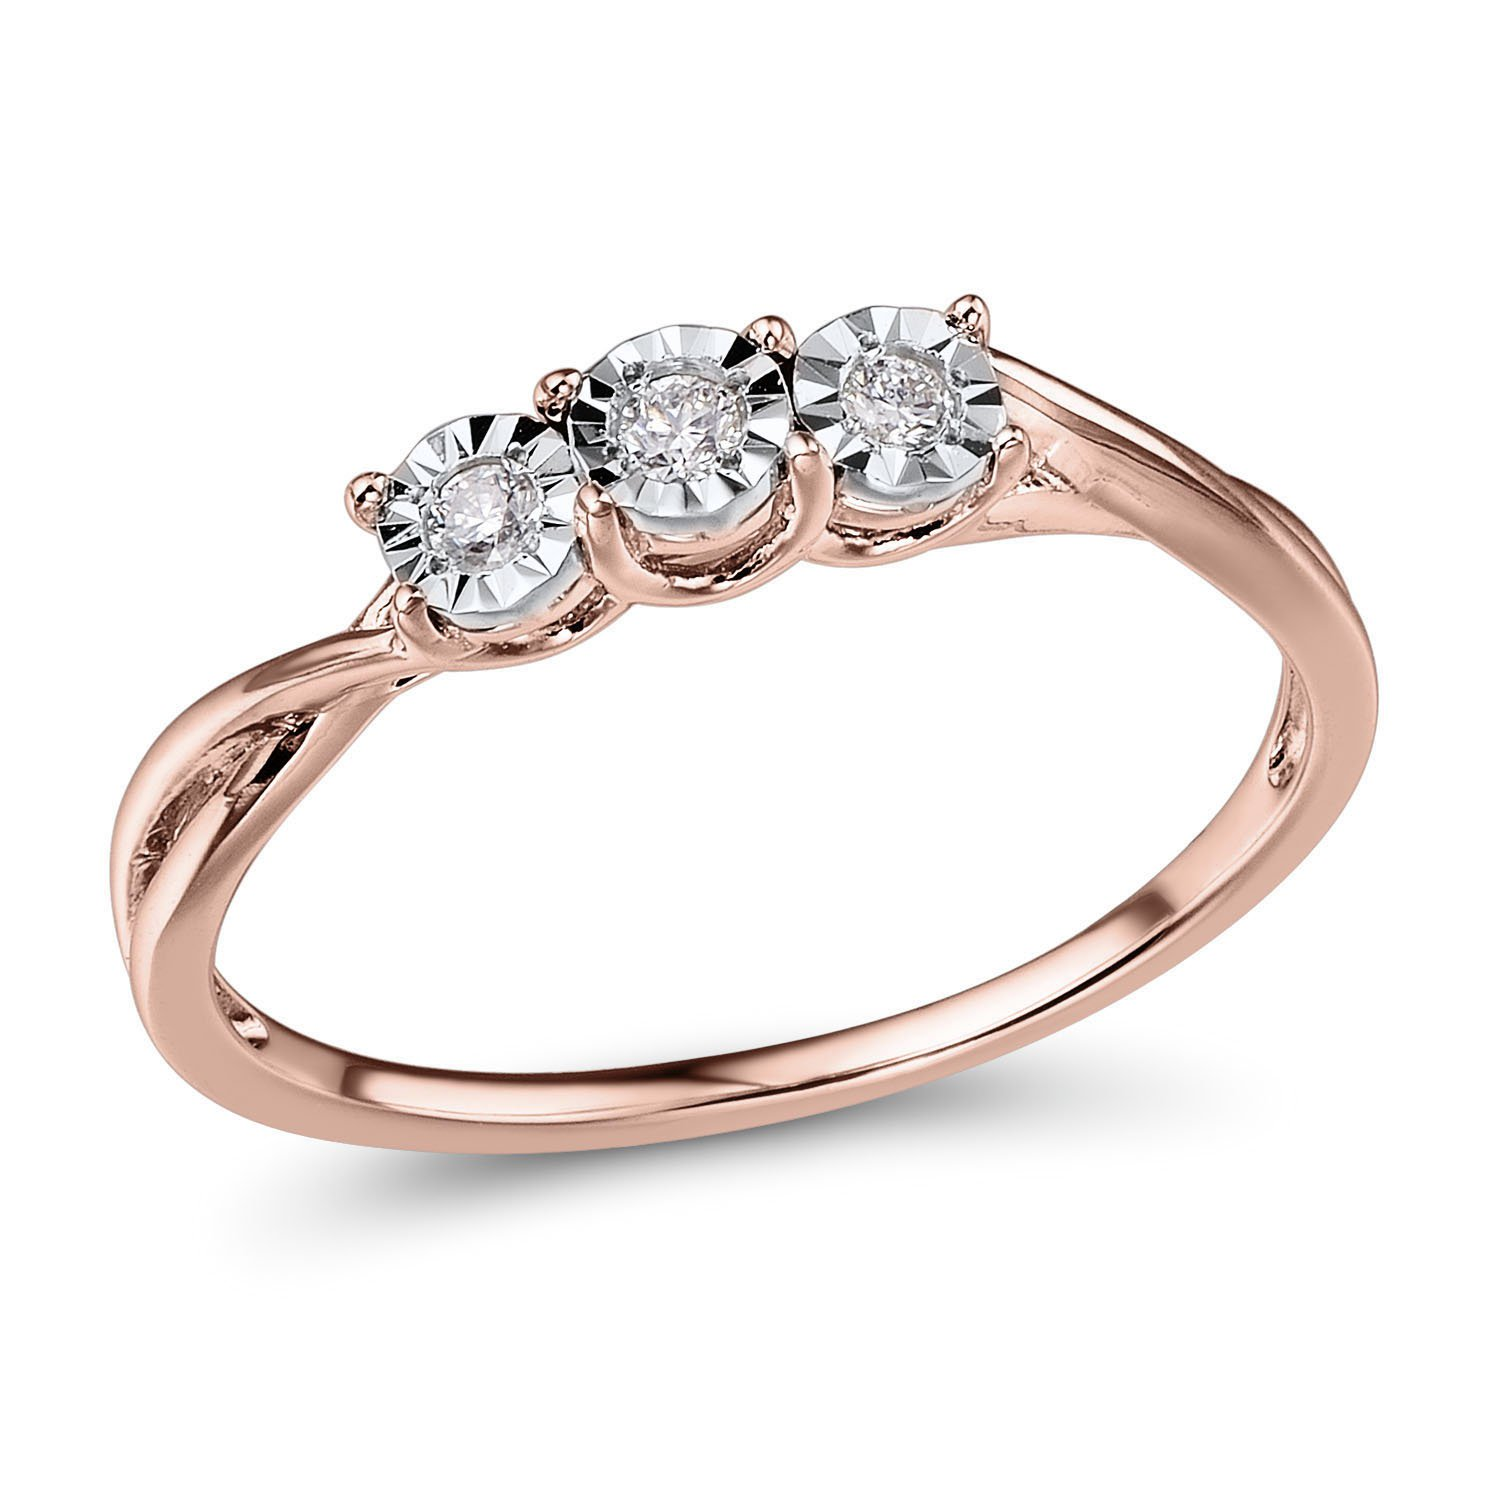 Diamond Promise Ring 10k Rose Gold and Rhodium Plated 10k White Gold 3-Stone Style by Diamond Classic Jewelry